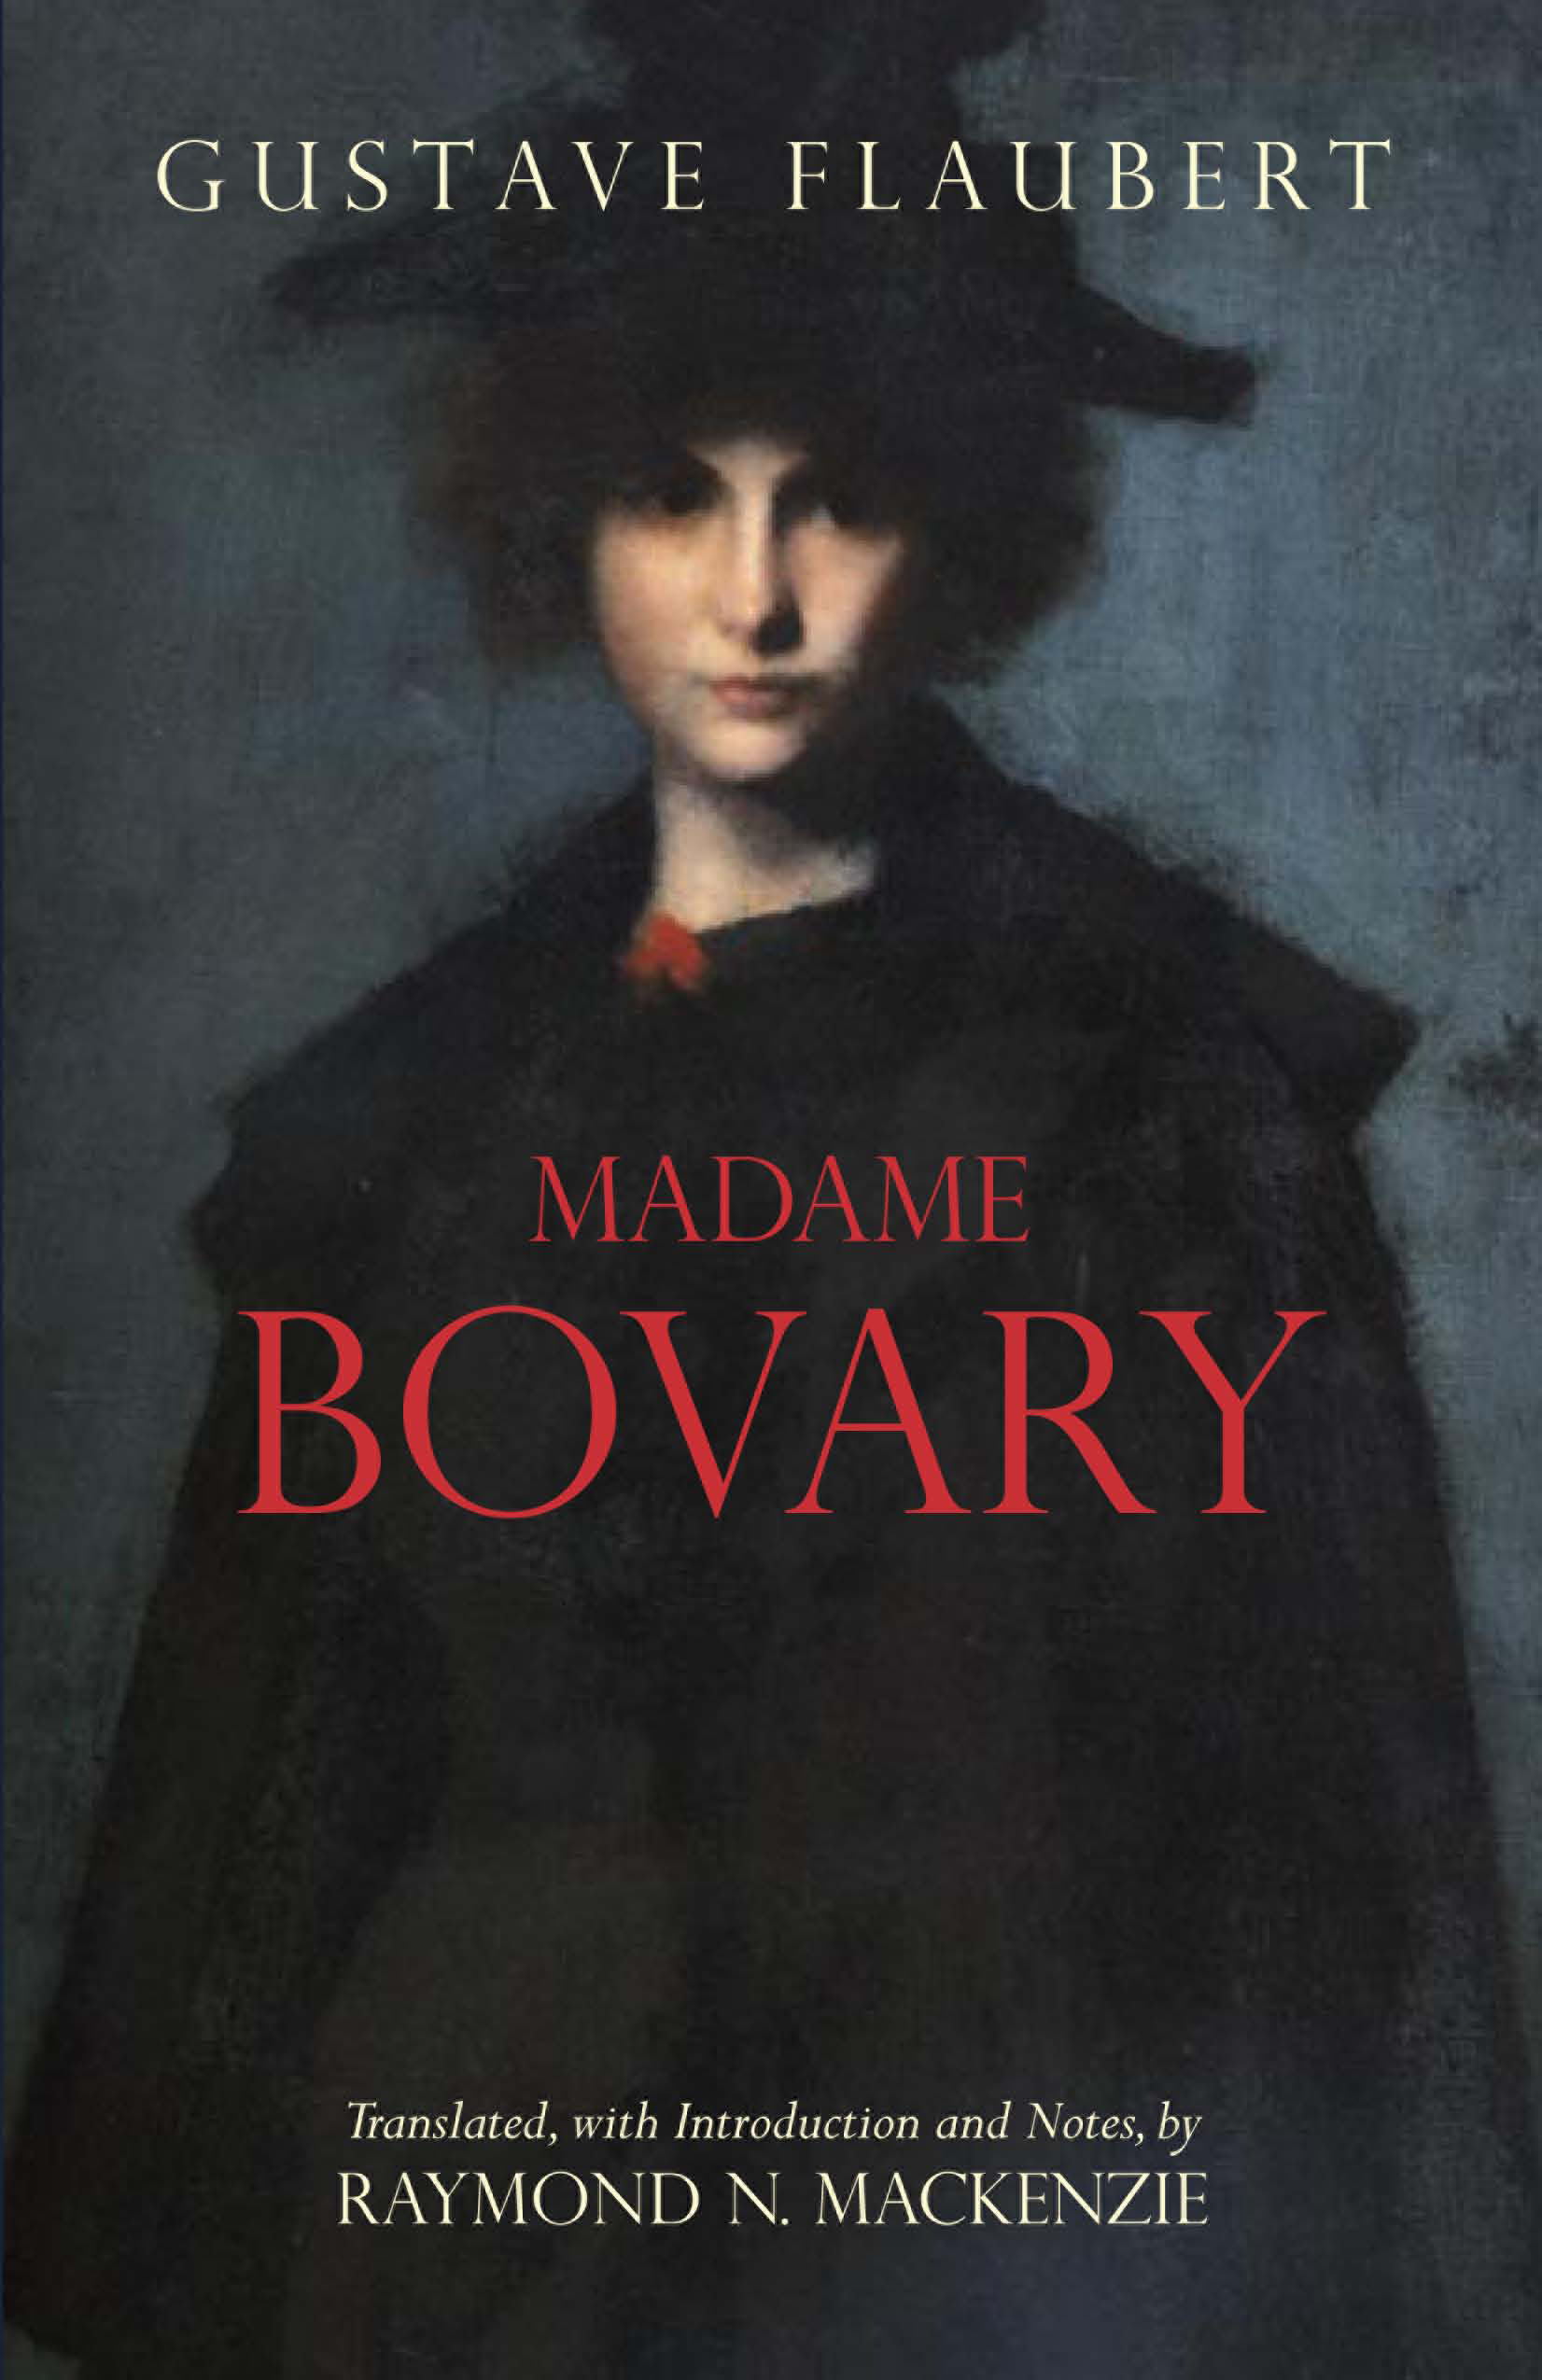 an analysis of the novel madame bovary by gustave flaubert Gustave flaubert (french: [ɡystav  he is known especially for his debut novel madame bovary (1857), his correspondence, and his scrupulous devotion to his style .